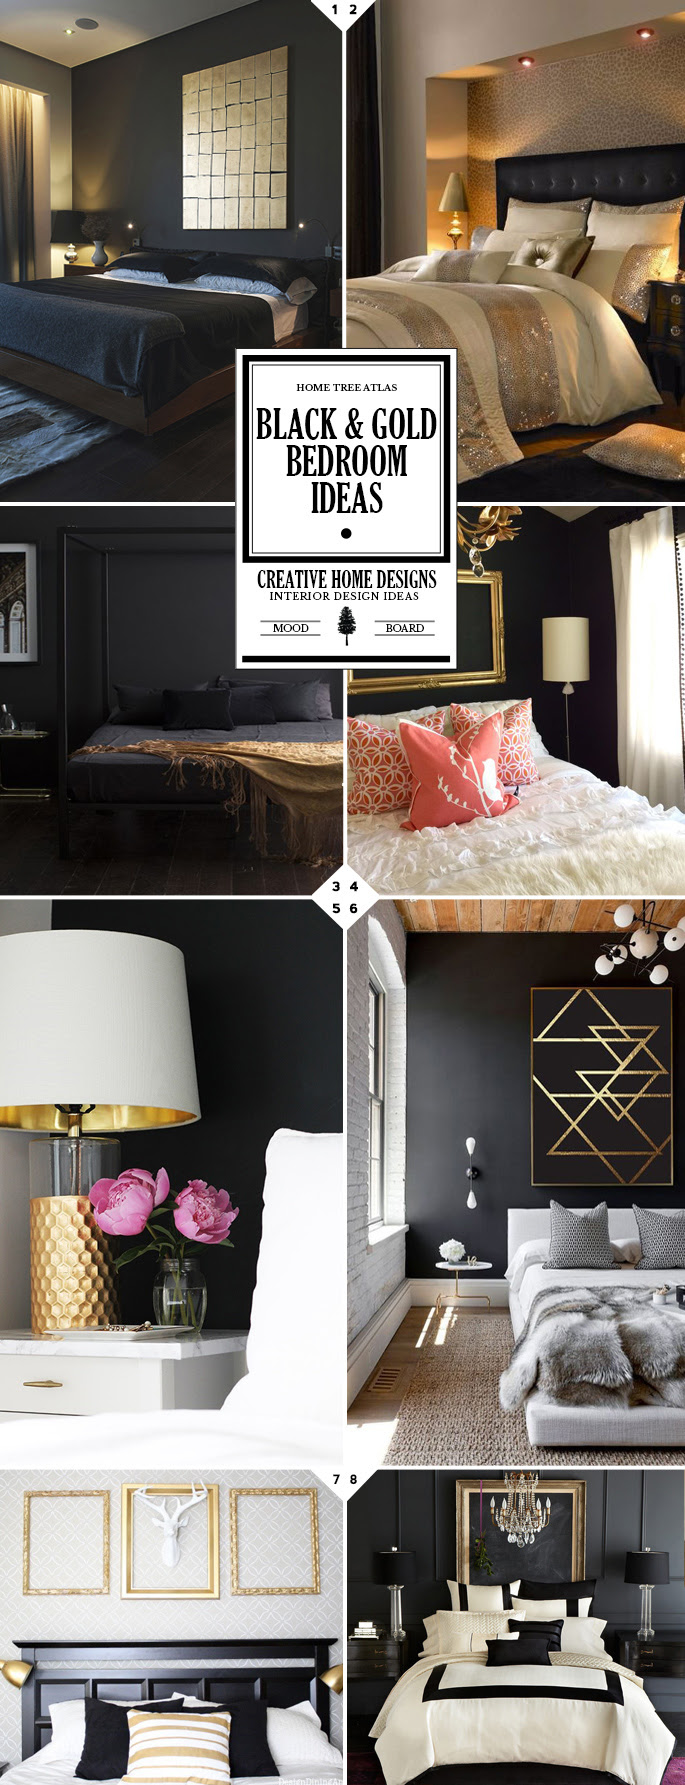 Style Guide: Black and Gold Bedroom Ideas | Home Tree Atlas